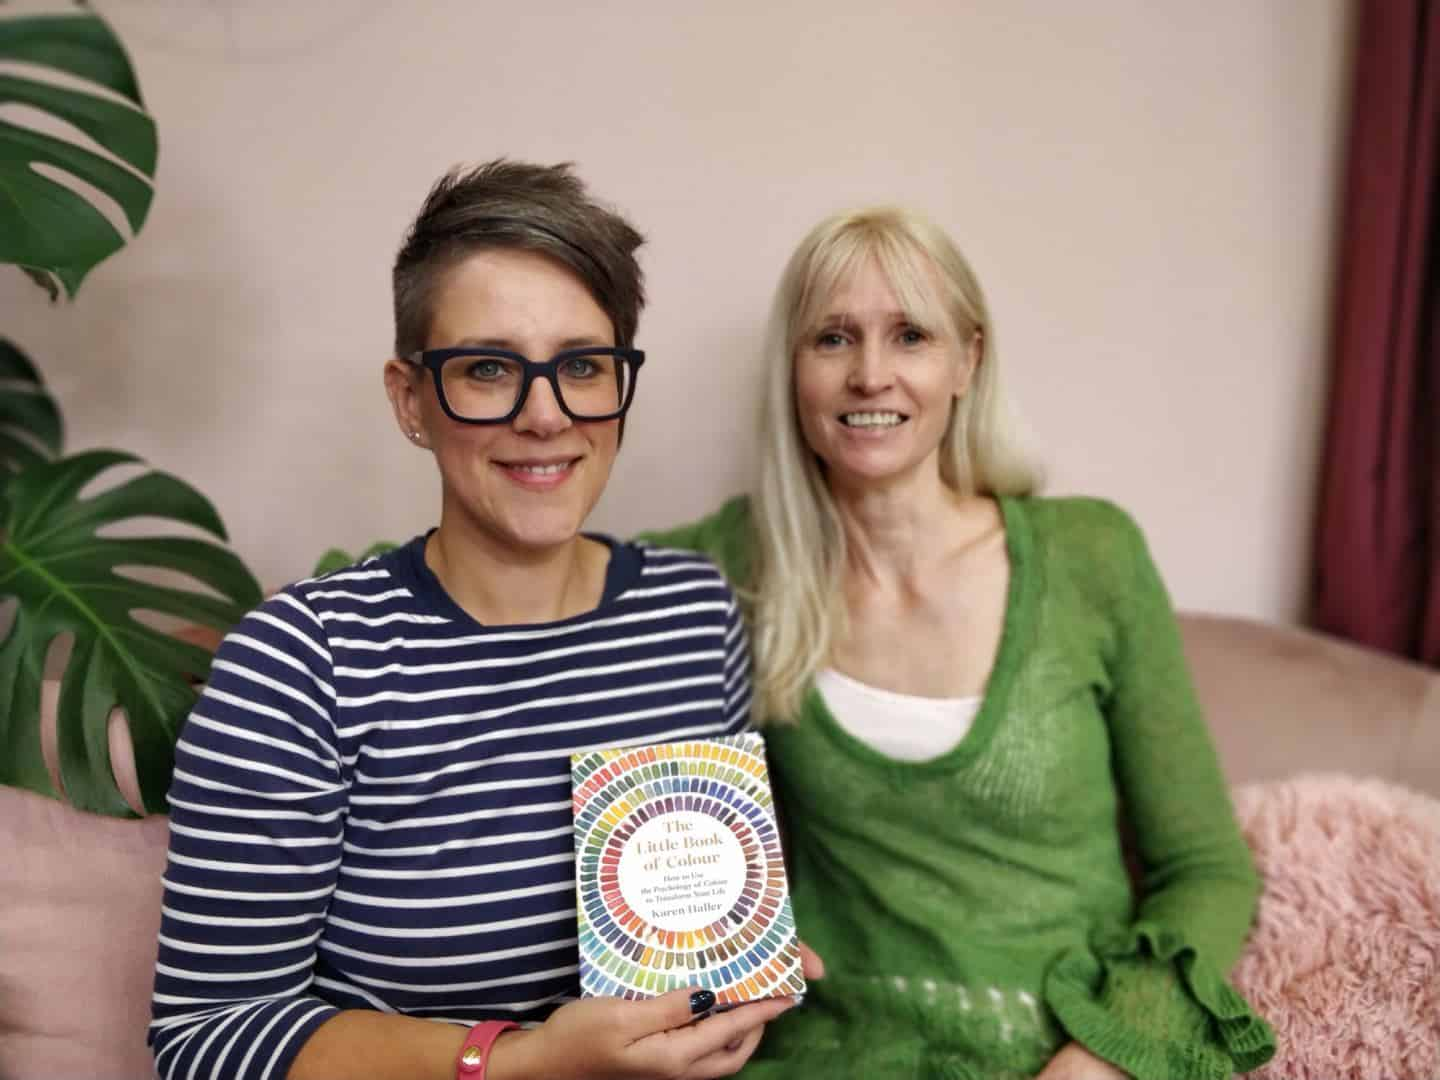 Stacey Sheppard and Karen Haller discuss the transformational power of colour and talk about her new book The little Book of Colour